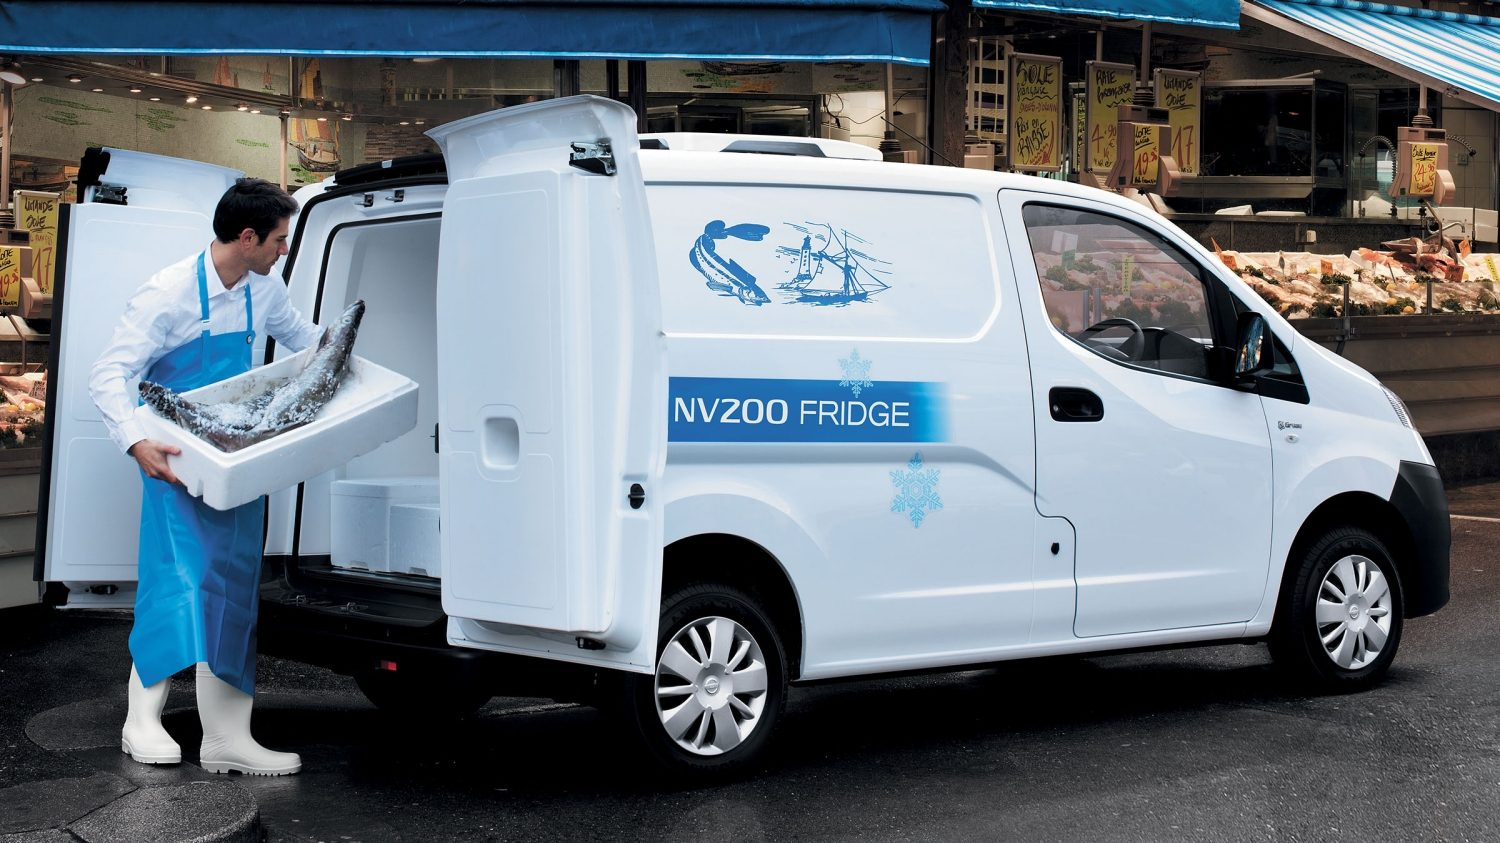 Van | Nissan NV200 | Commercial vehicle in use